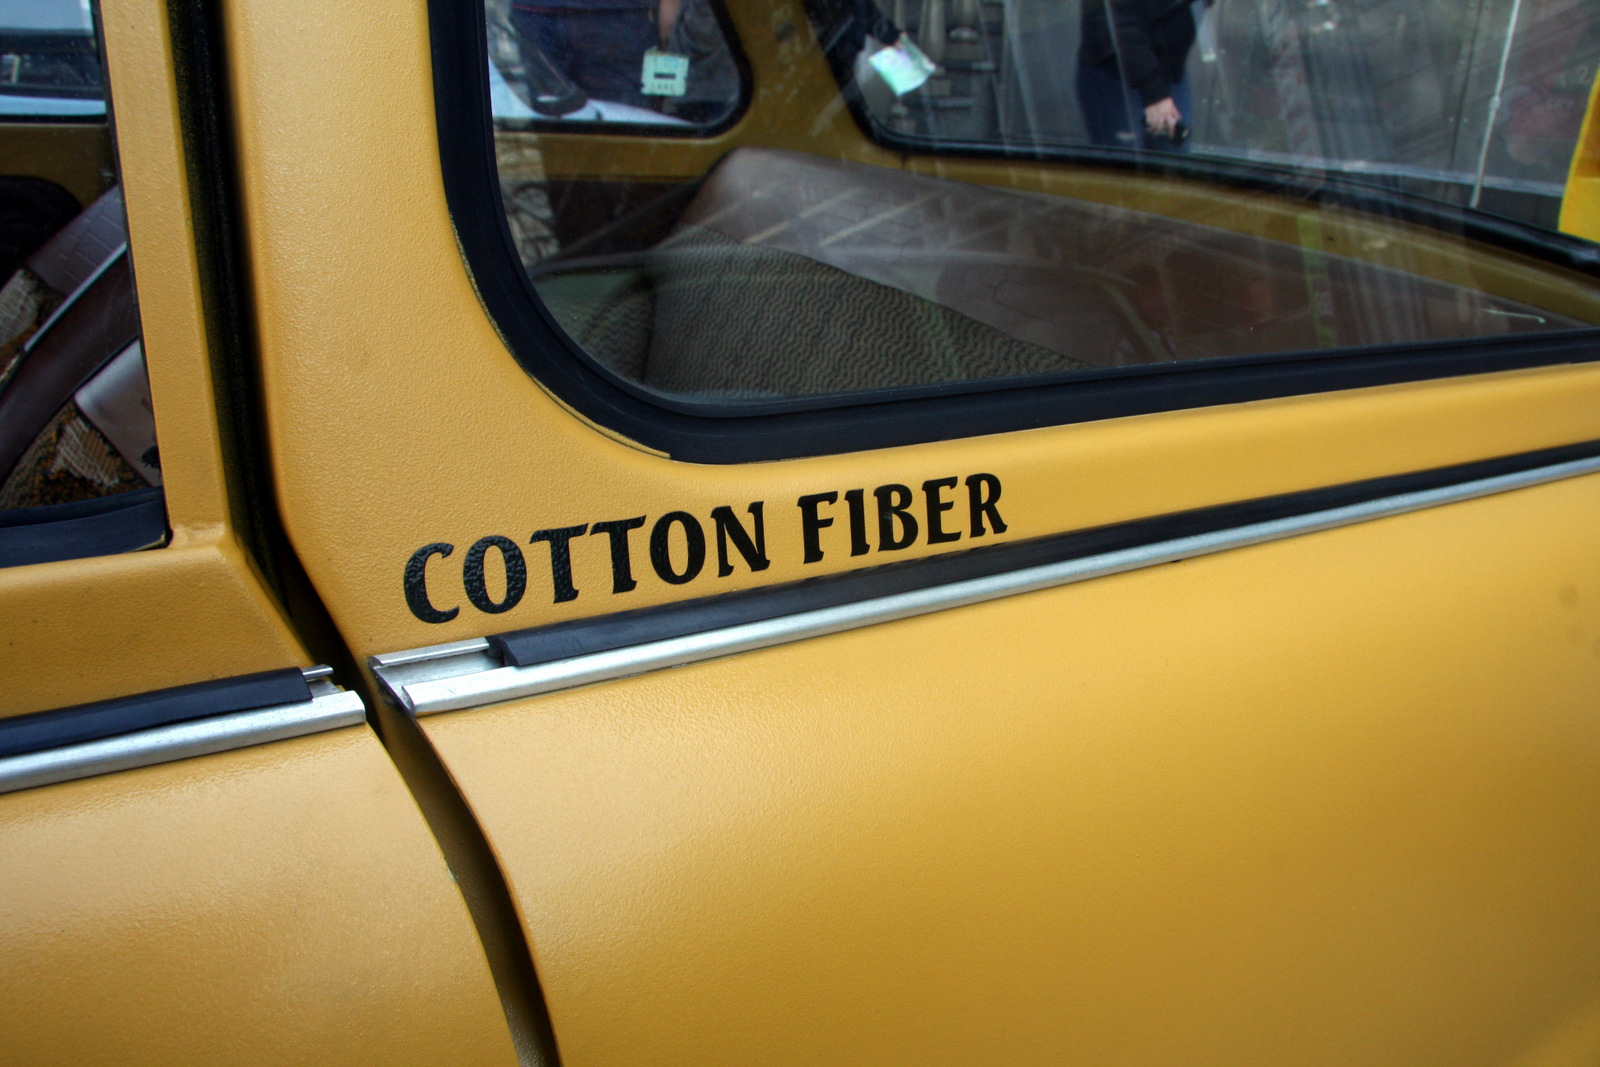 A Trabant body is made of a cotton-fiber plastic called Duraplast. The cars had to be lightweight because they didn't make much power.